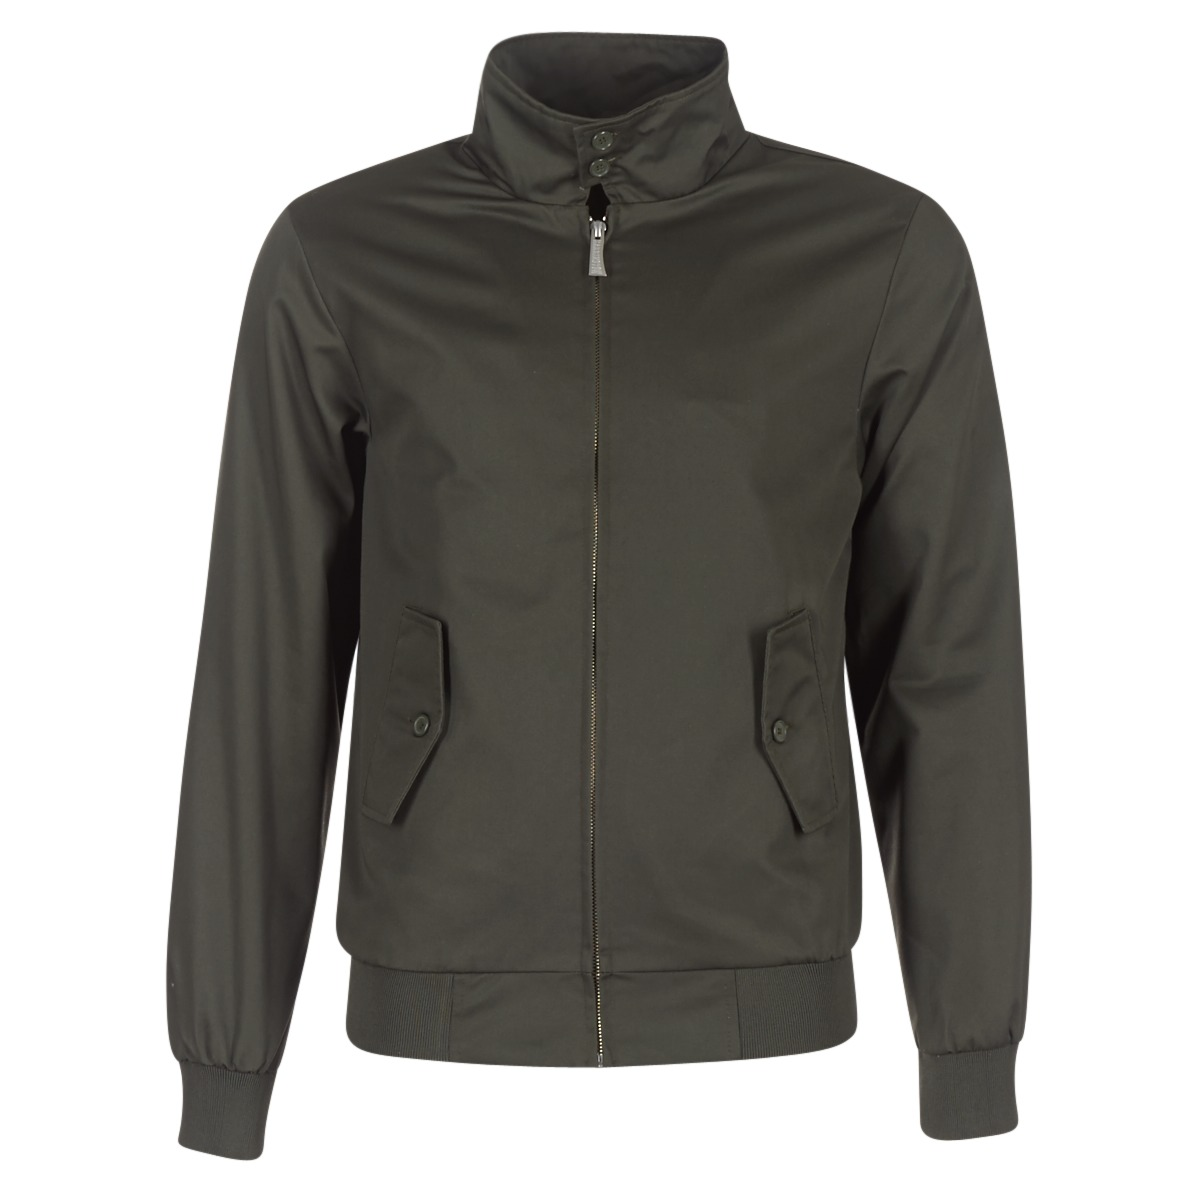 Vindjakker Harrington  HARRINGTON PAULO